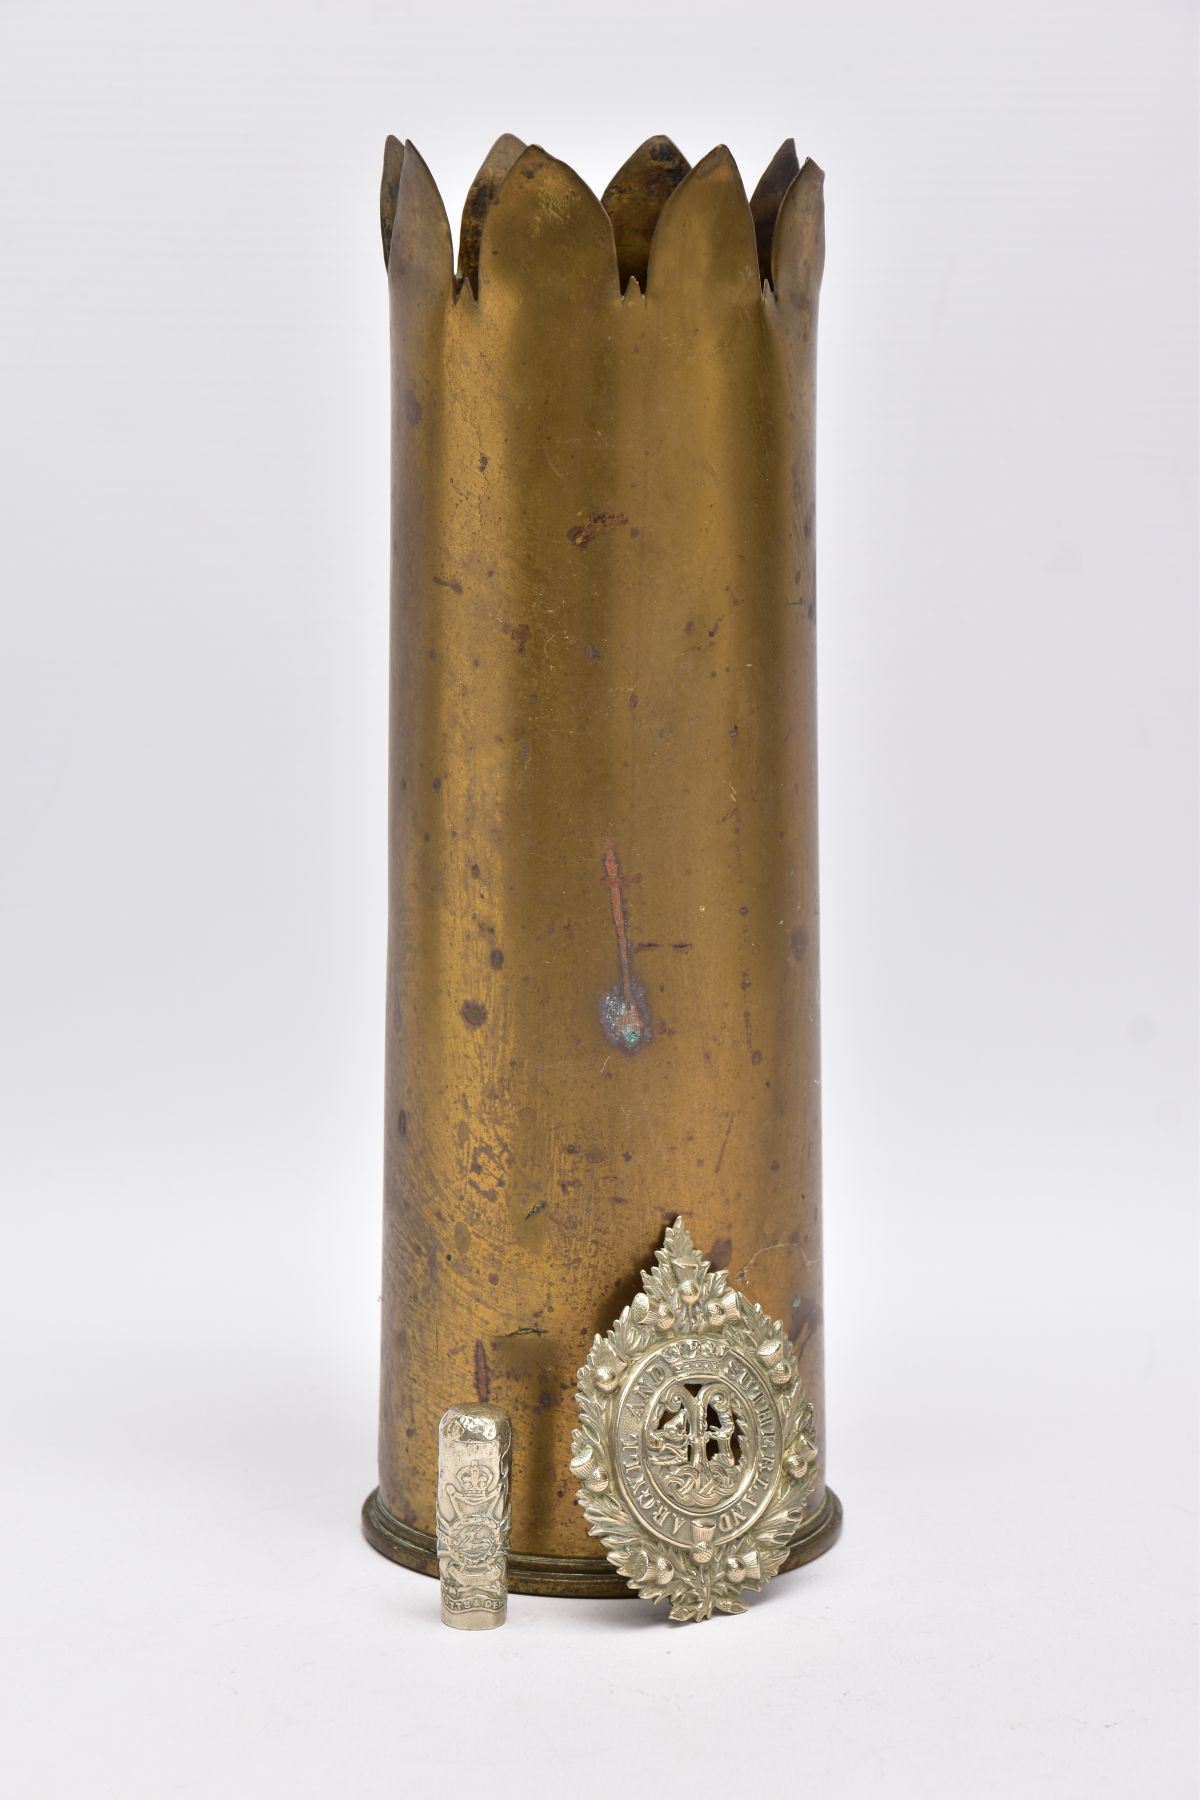 A WWI ERA 18LB SHELL CASE which has a cut out petal style around rim, together with silver